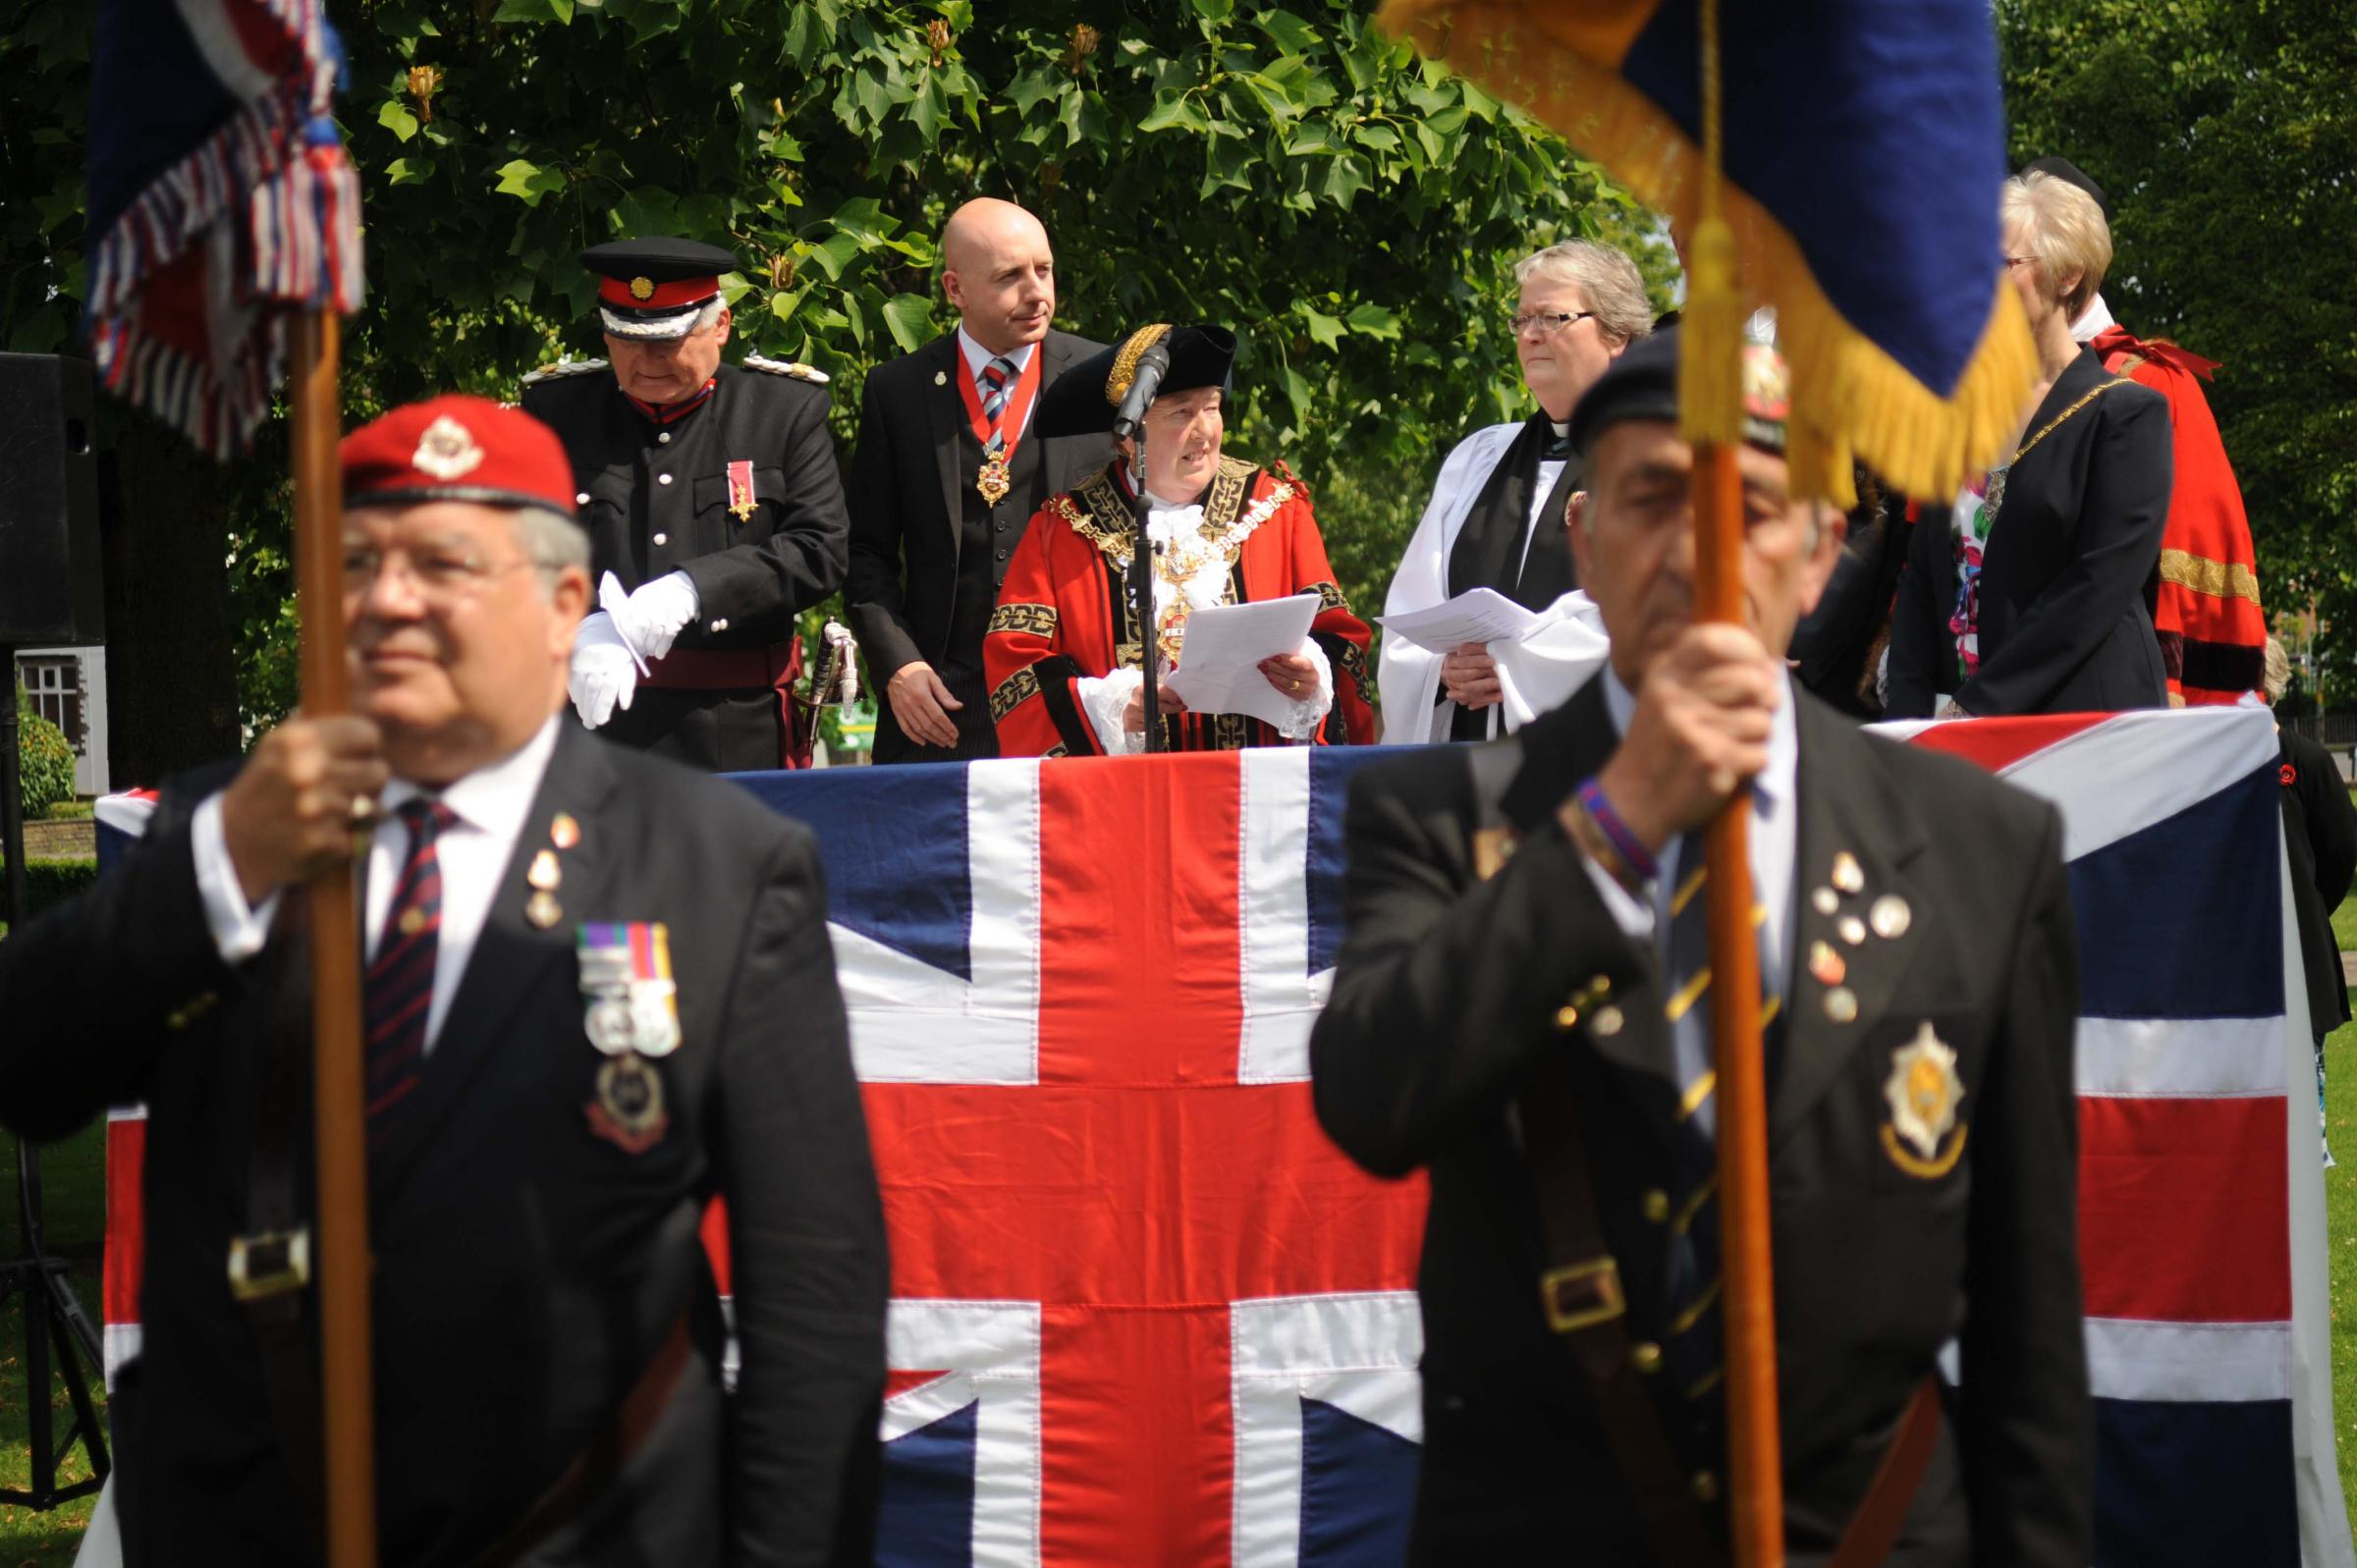 Mayor leads ceremony to raise Armed Forces Flag at Dudley Council House